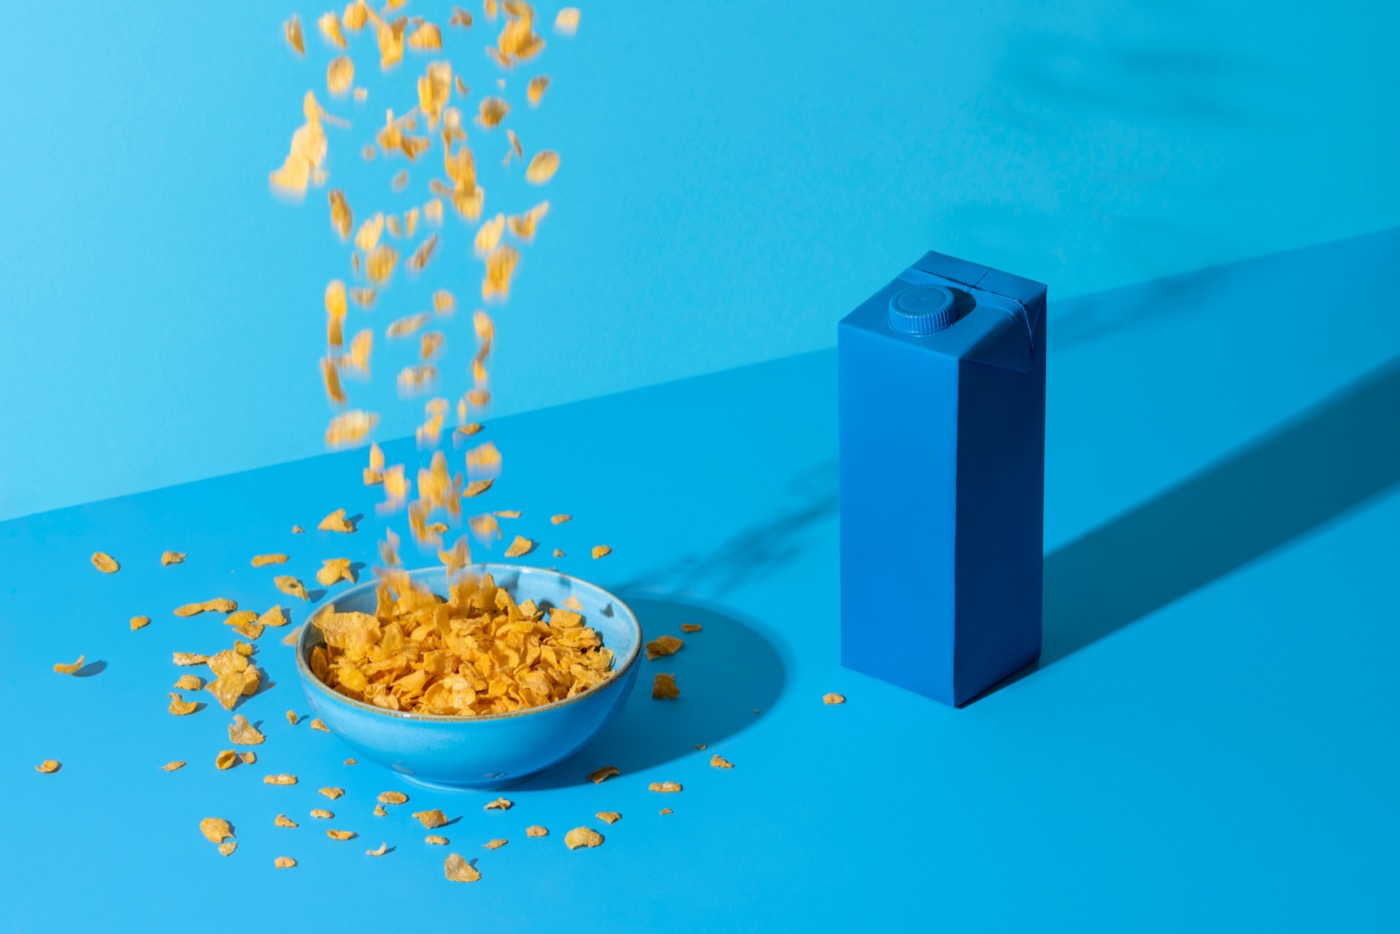 a waterfall of corn flakes falling into a blue bowl on a blue table with a blue carton of milk nearby